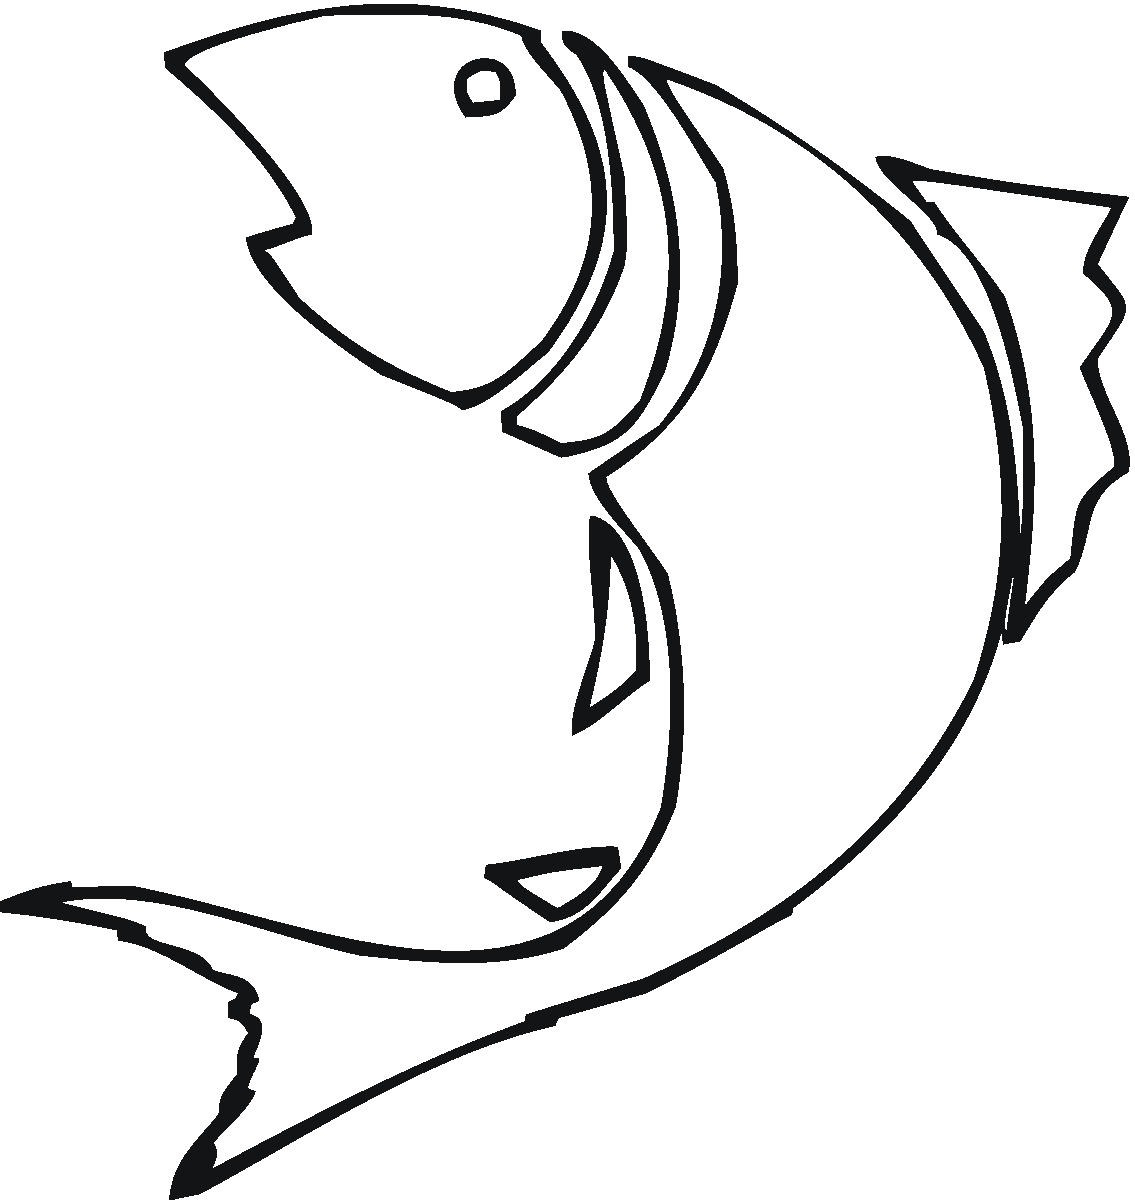 1135x1200 Simple Drawing Of A Fish